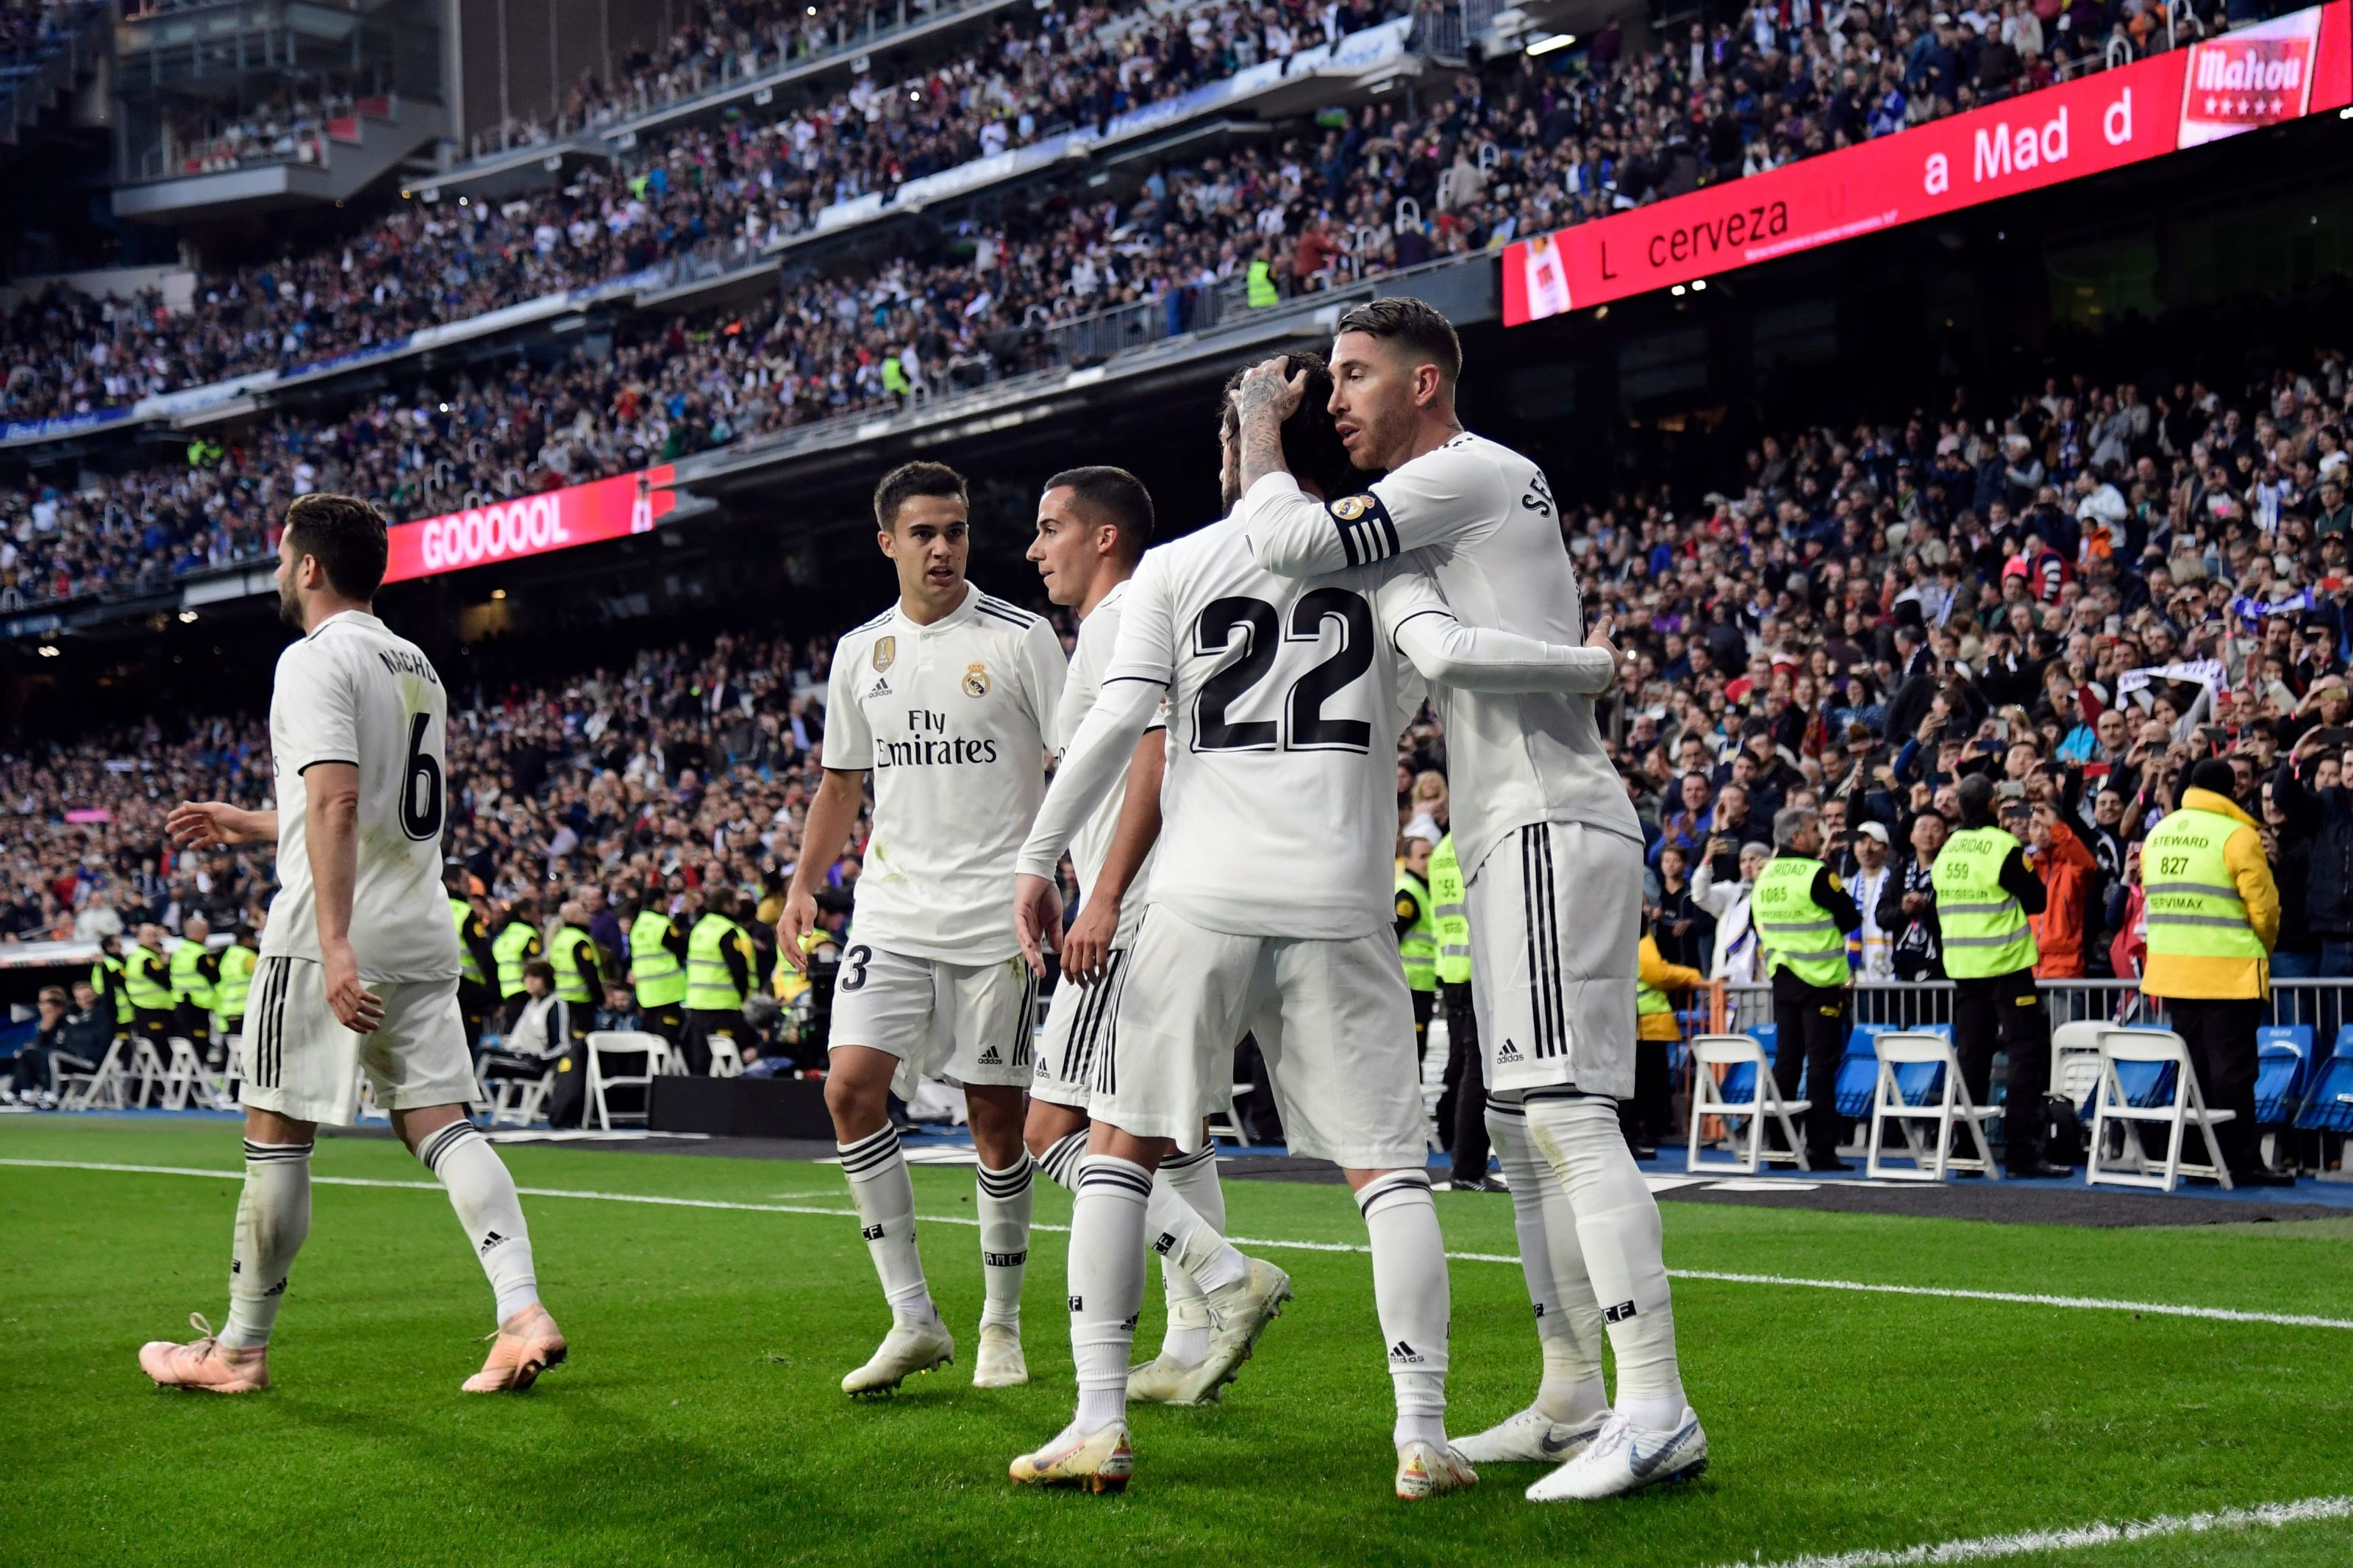 Real Madrid 2-0 Real Valladolid: 5 points of discussion